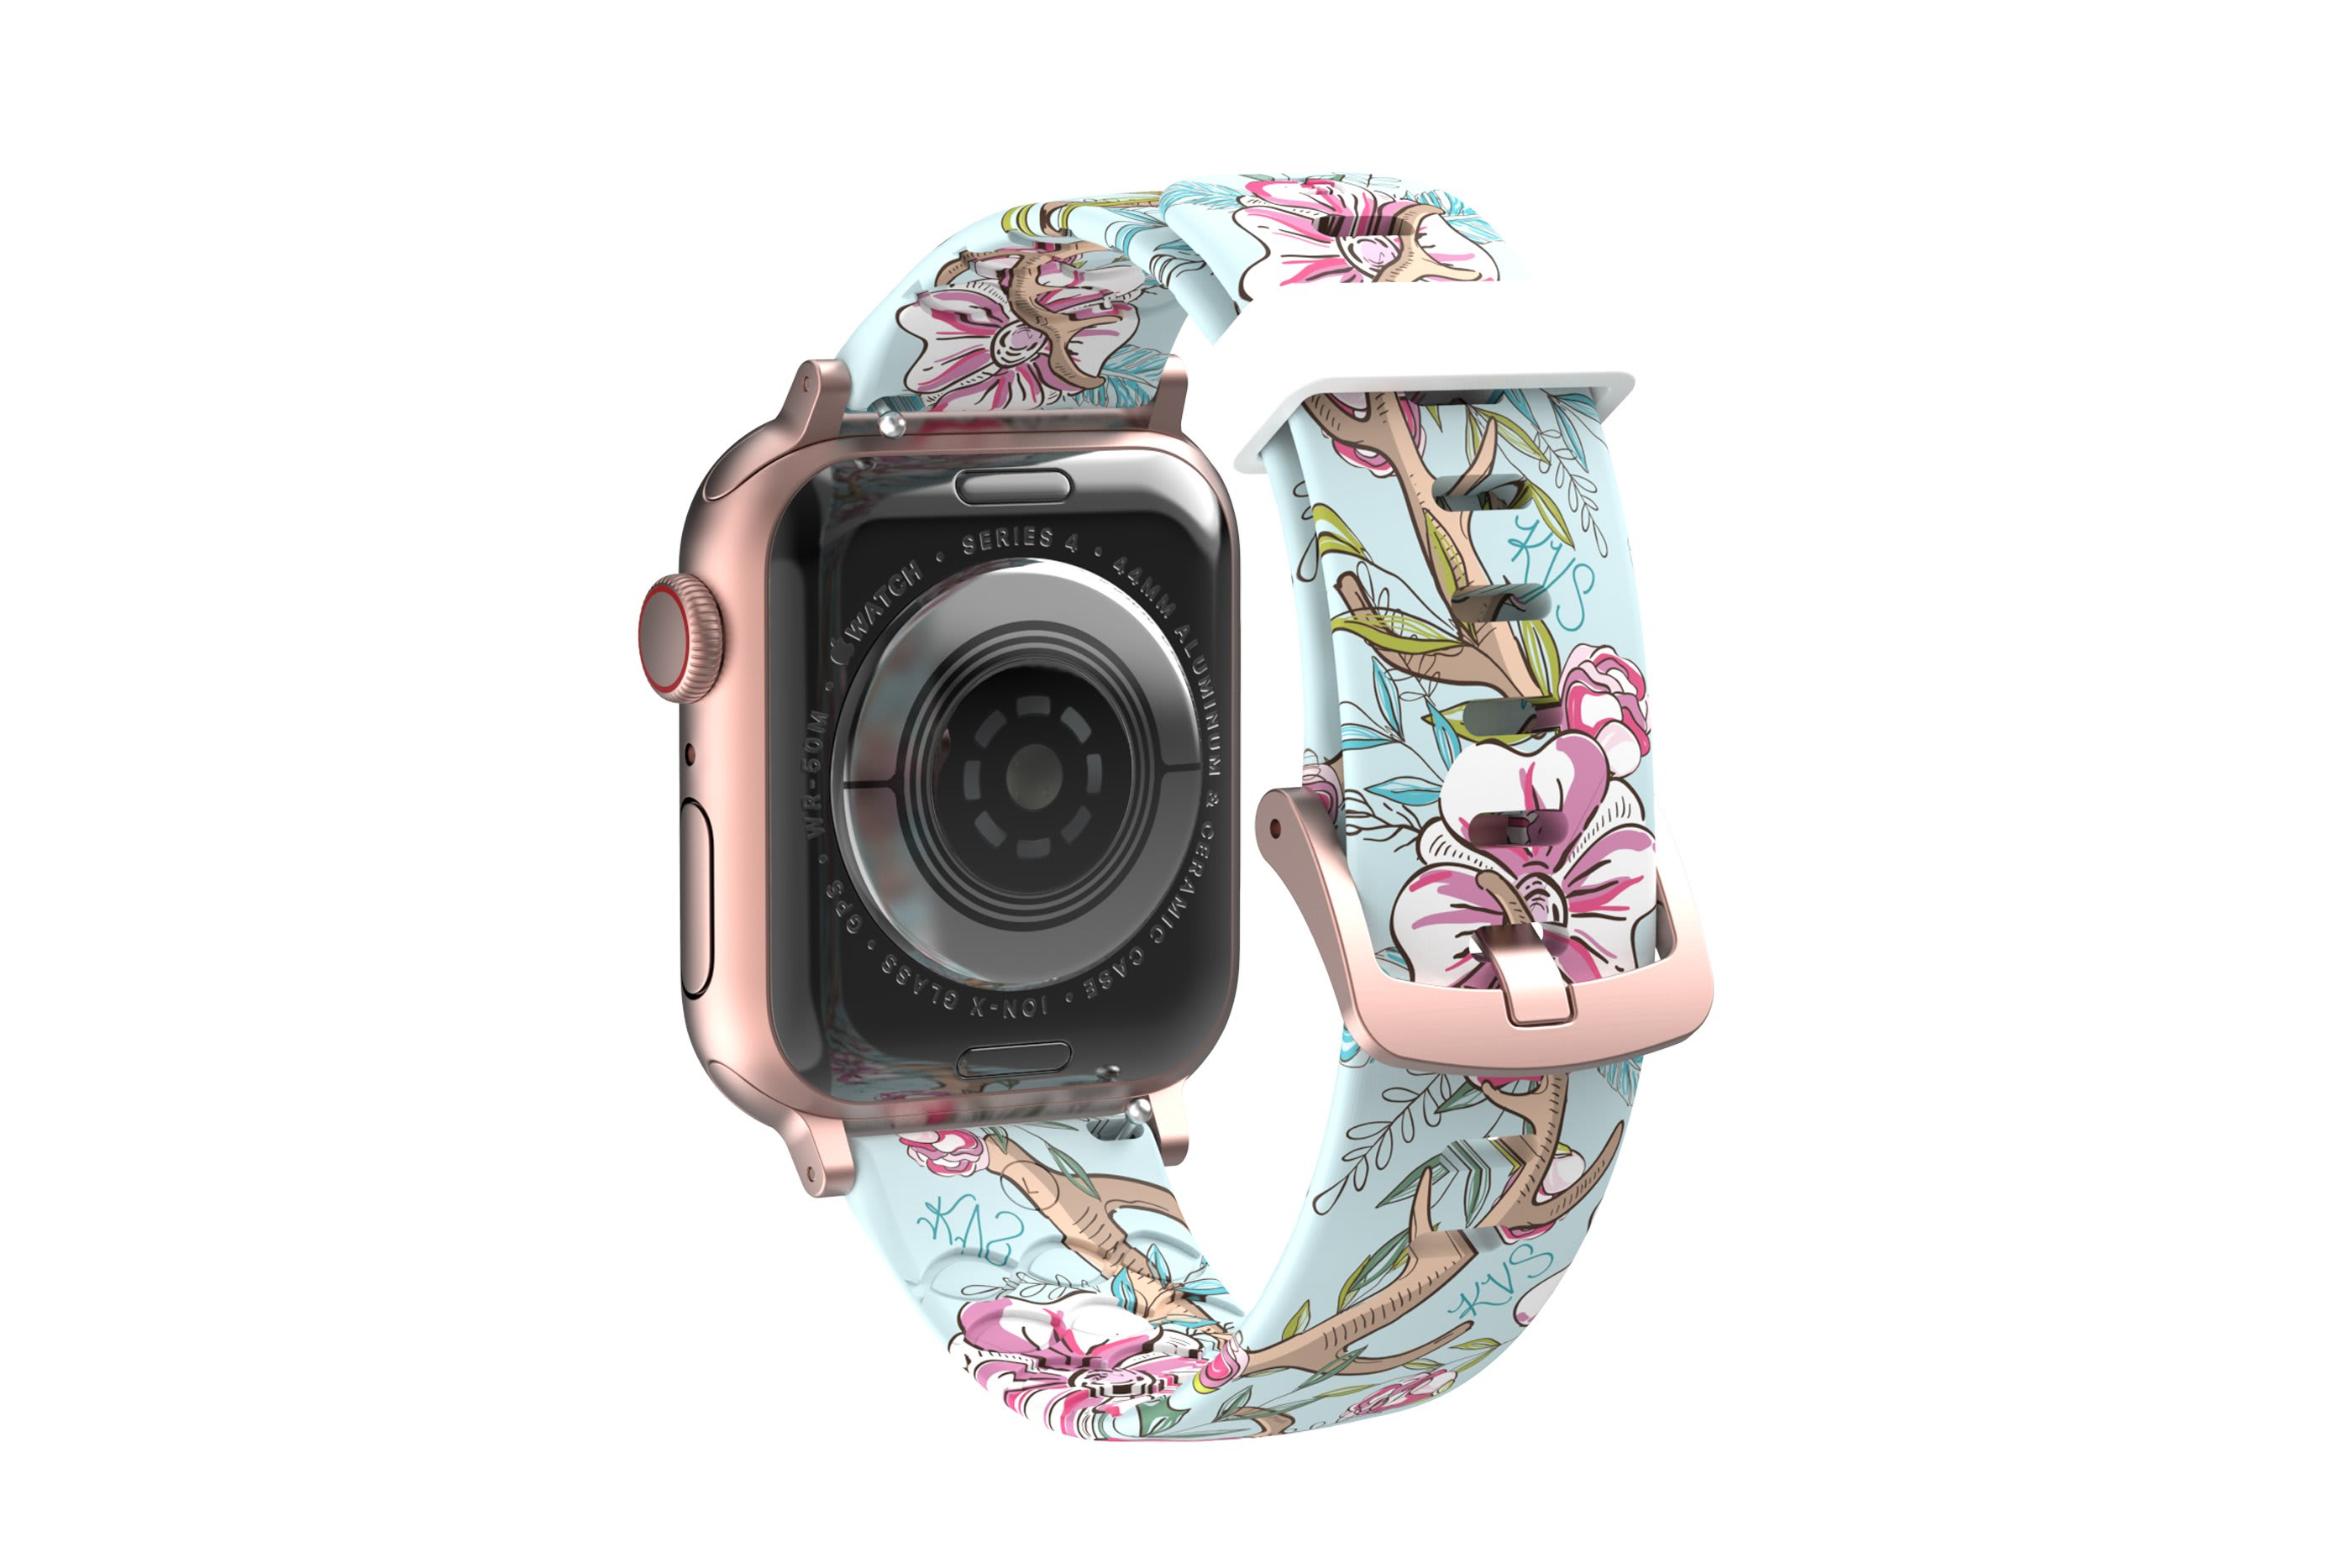 Love Deerly - Katie Van Slyke  apple watch band with gray hardware viewed from top down